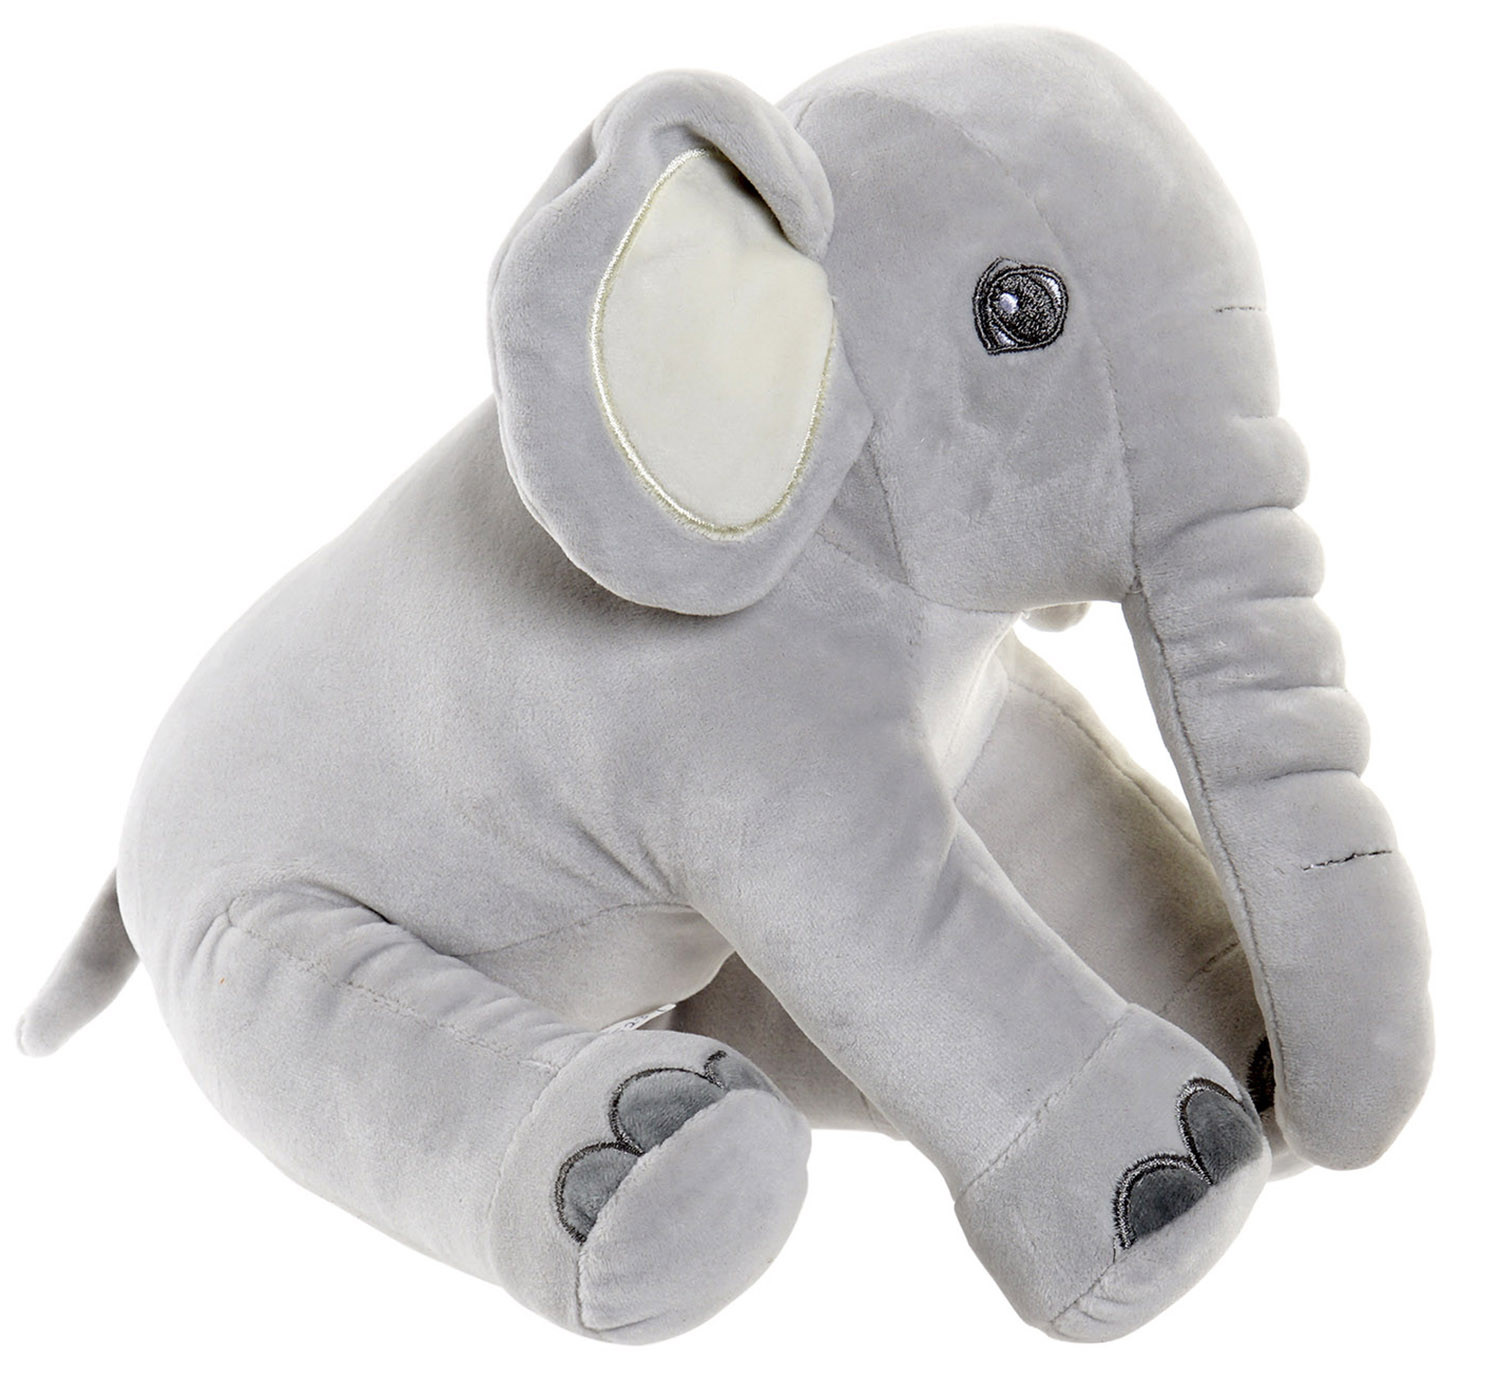 Elephant Plush for Children. Stuffed Elephant Sitting. Design of Animal, with Child style 18x20x25 - Home and More